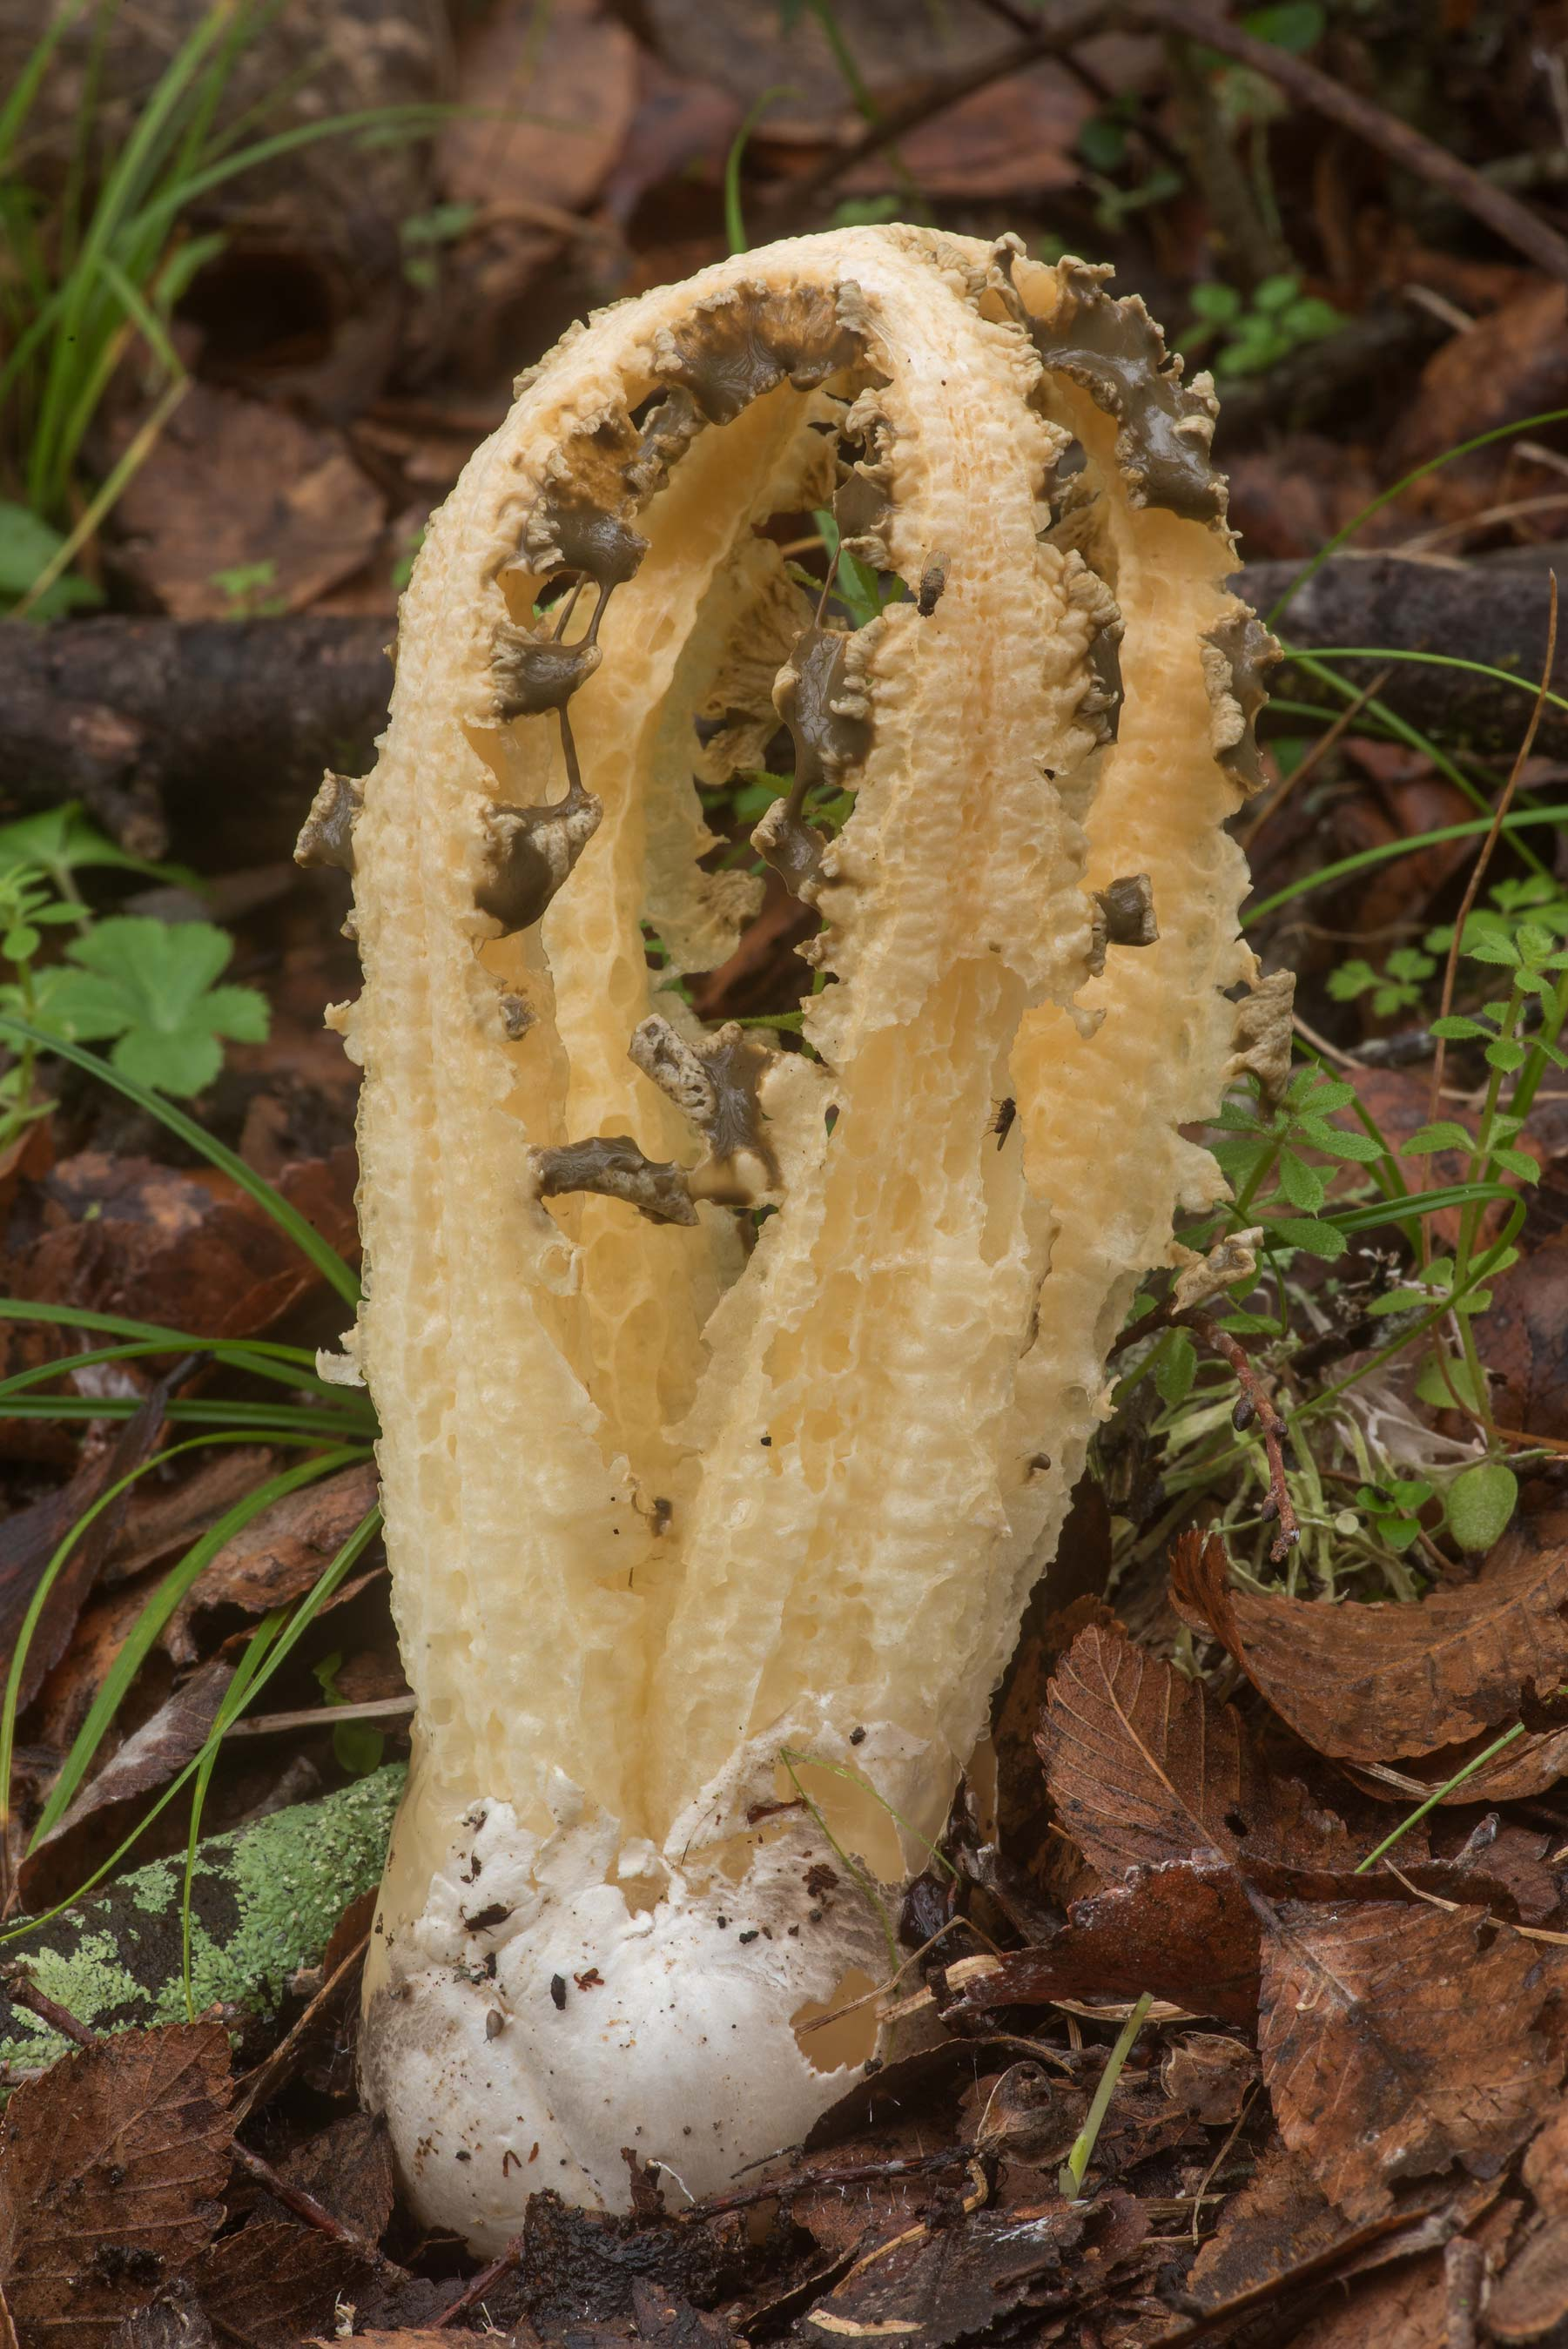 Side view of a stinkhorn mushroom Blumenavia...State Historic Site. Washington, Texas